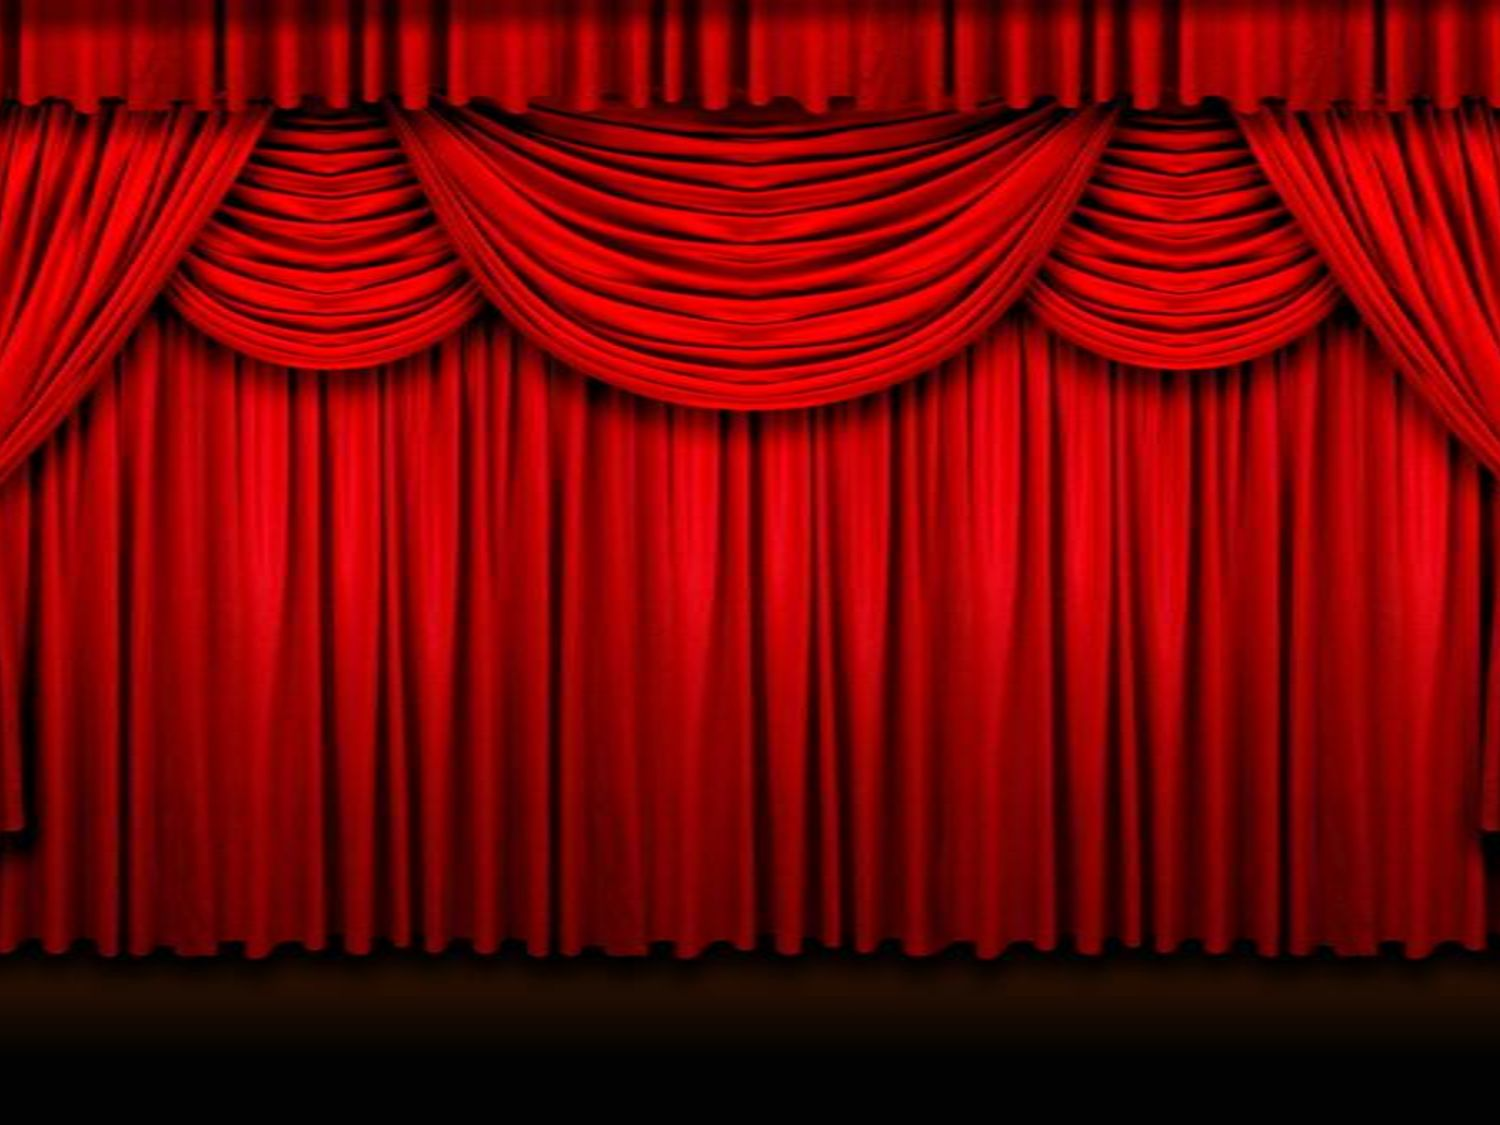 Http Freecoloringpages Co Uk Q Theatre Curtain